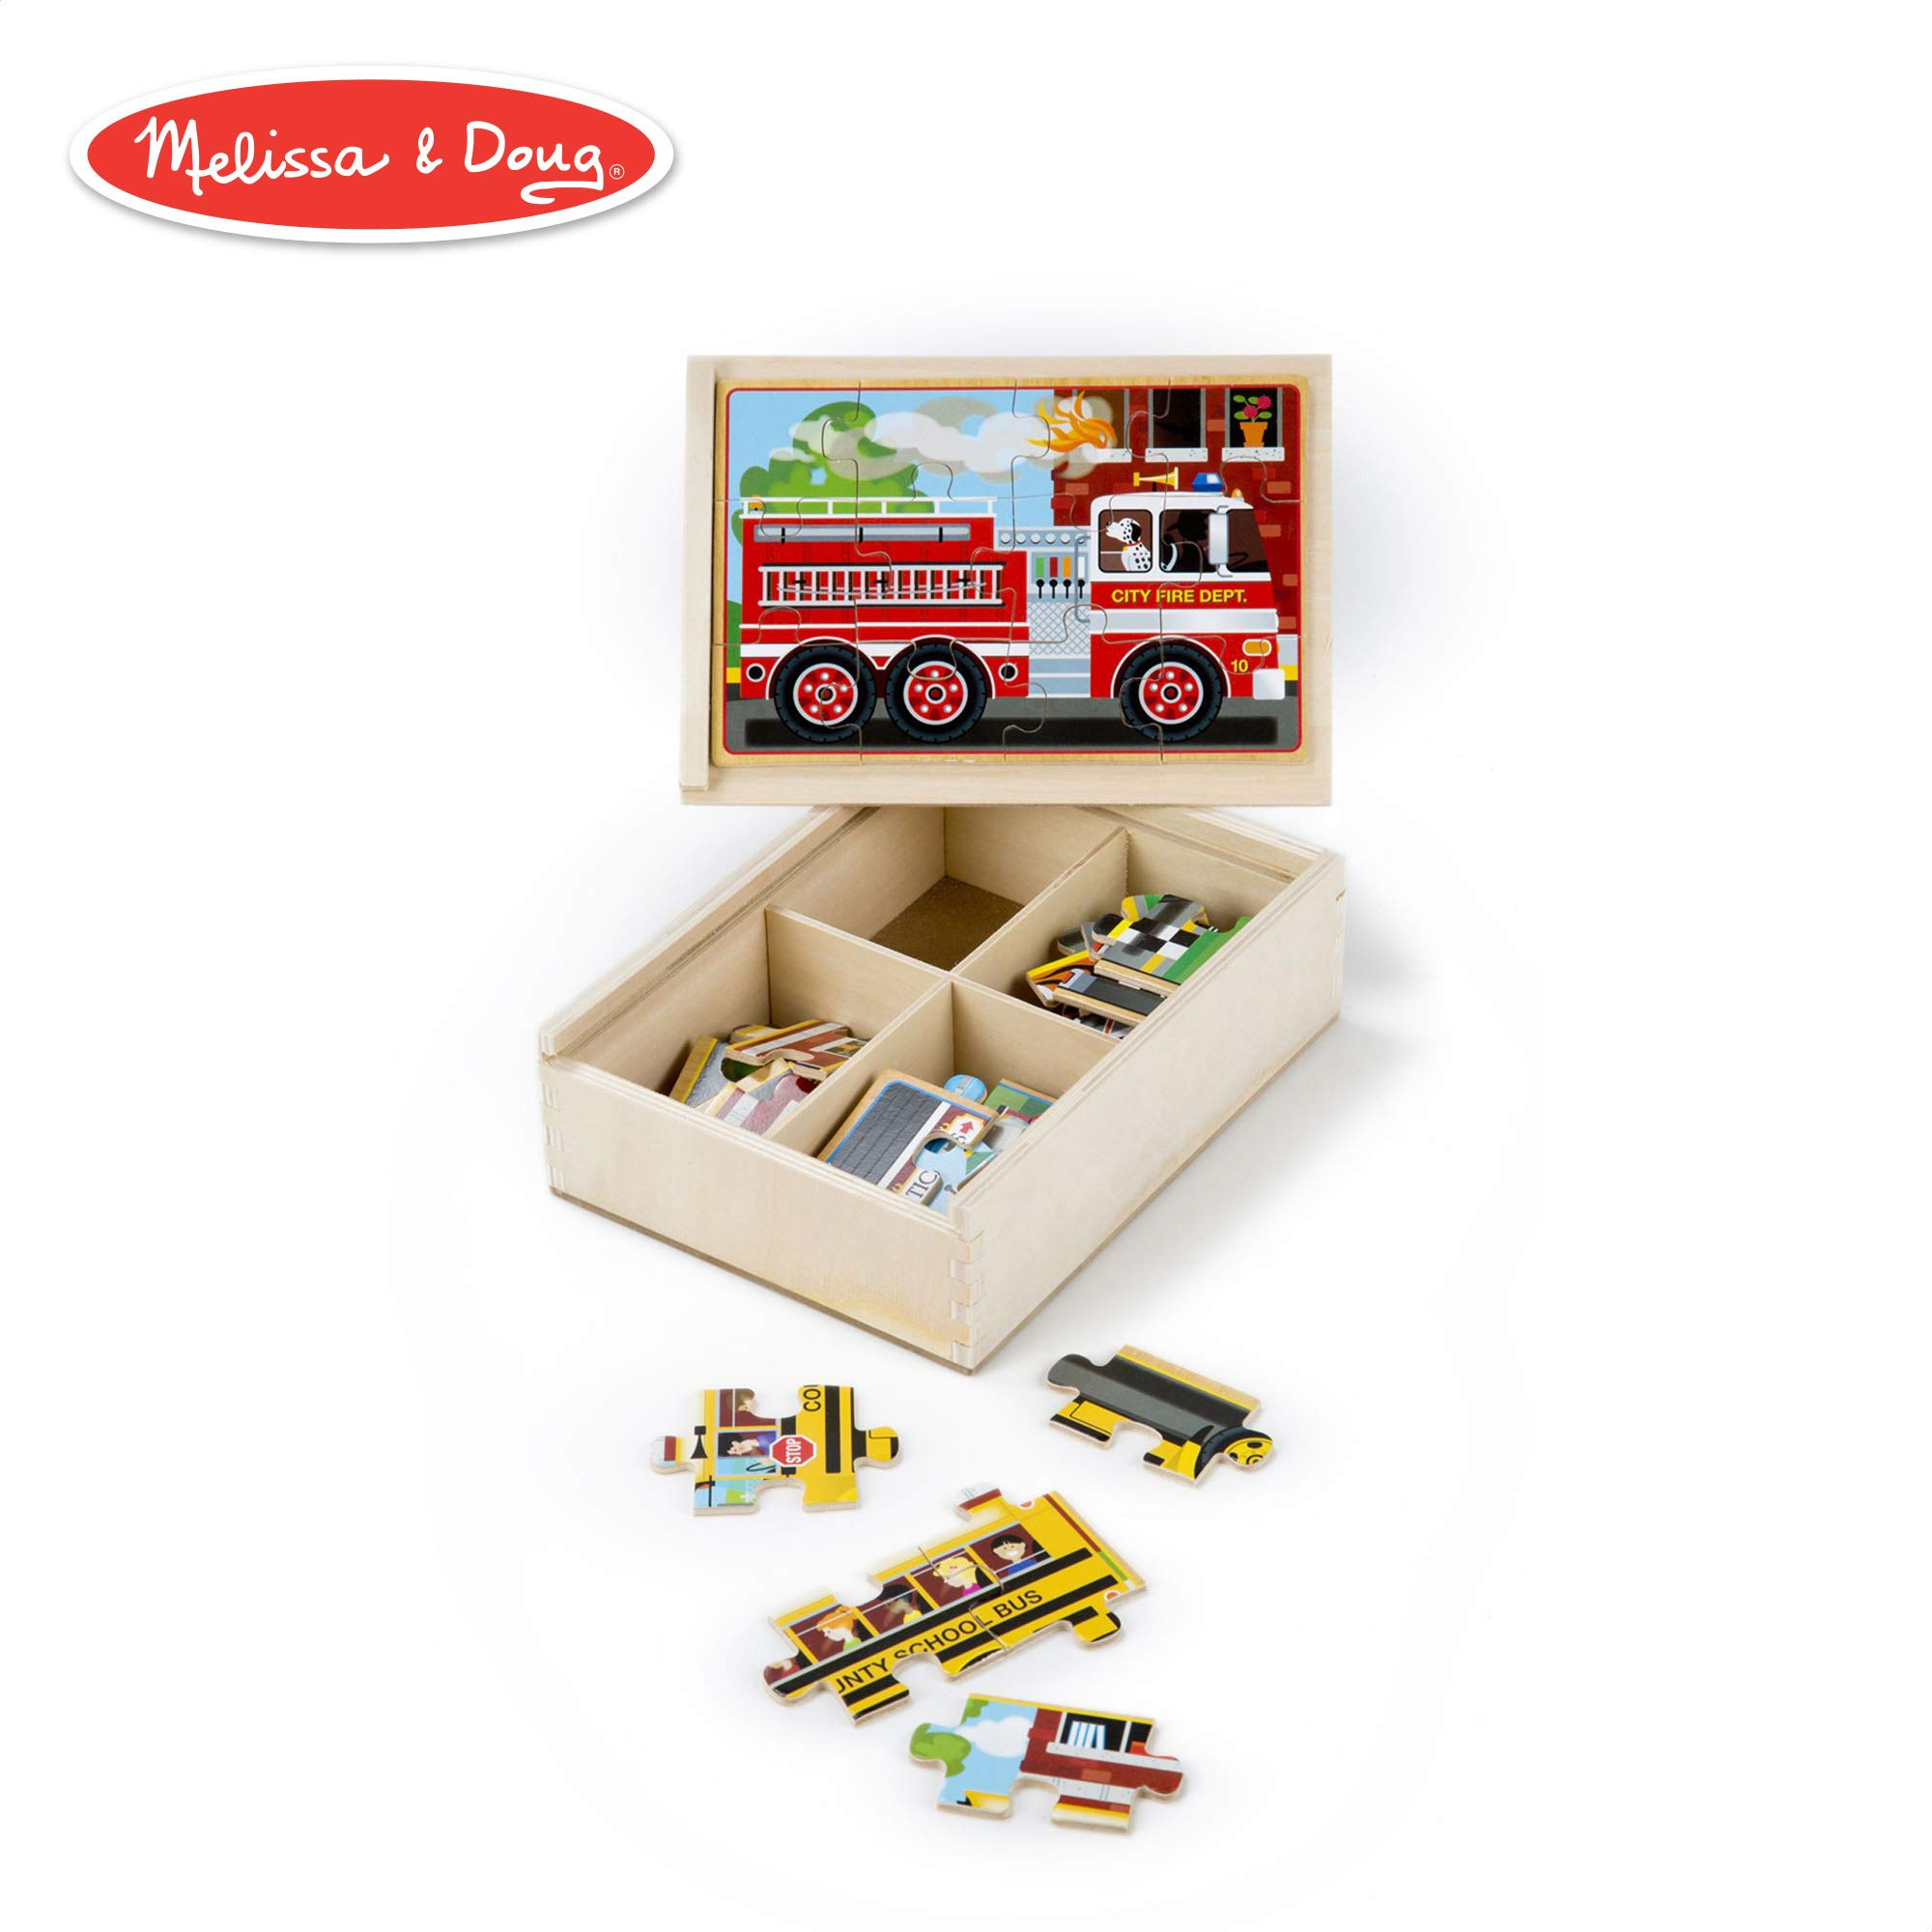 Melissa & Doug Vehicles Jigsaw Puzzles in a Box (Four Wooden Puzzles, Sturdy Wooden Storage Box, 12-Piece Puzzles, 8'' H x 6'' W x 2.5'' L) by Melissa & Doug